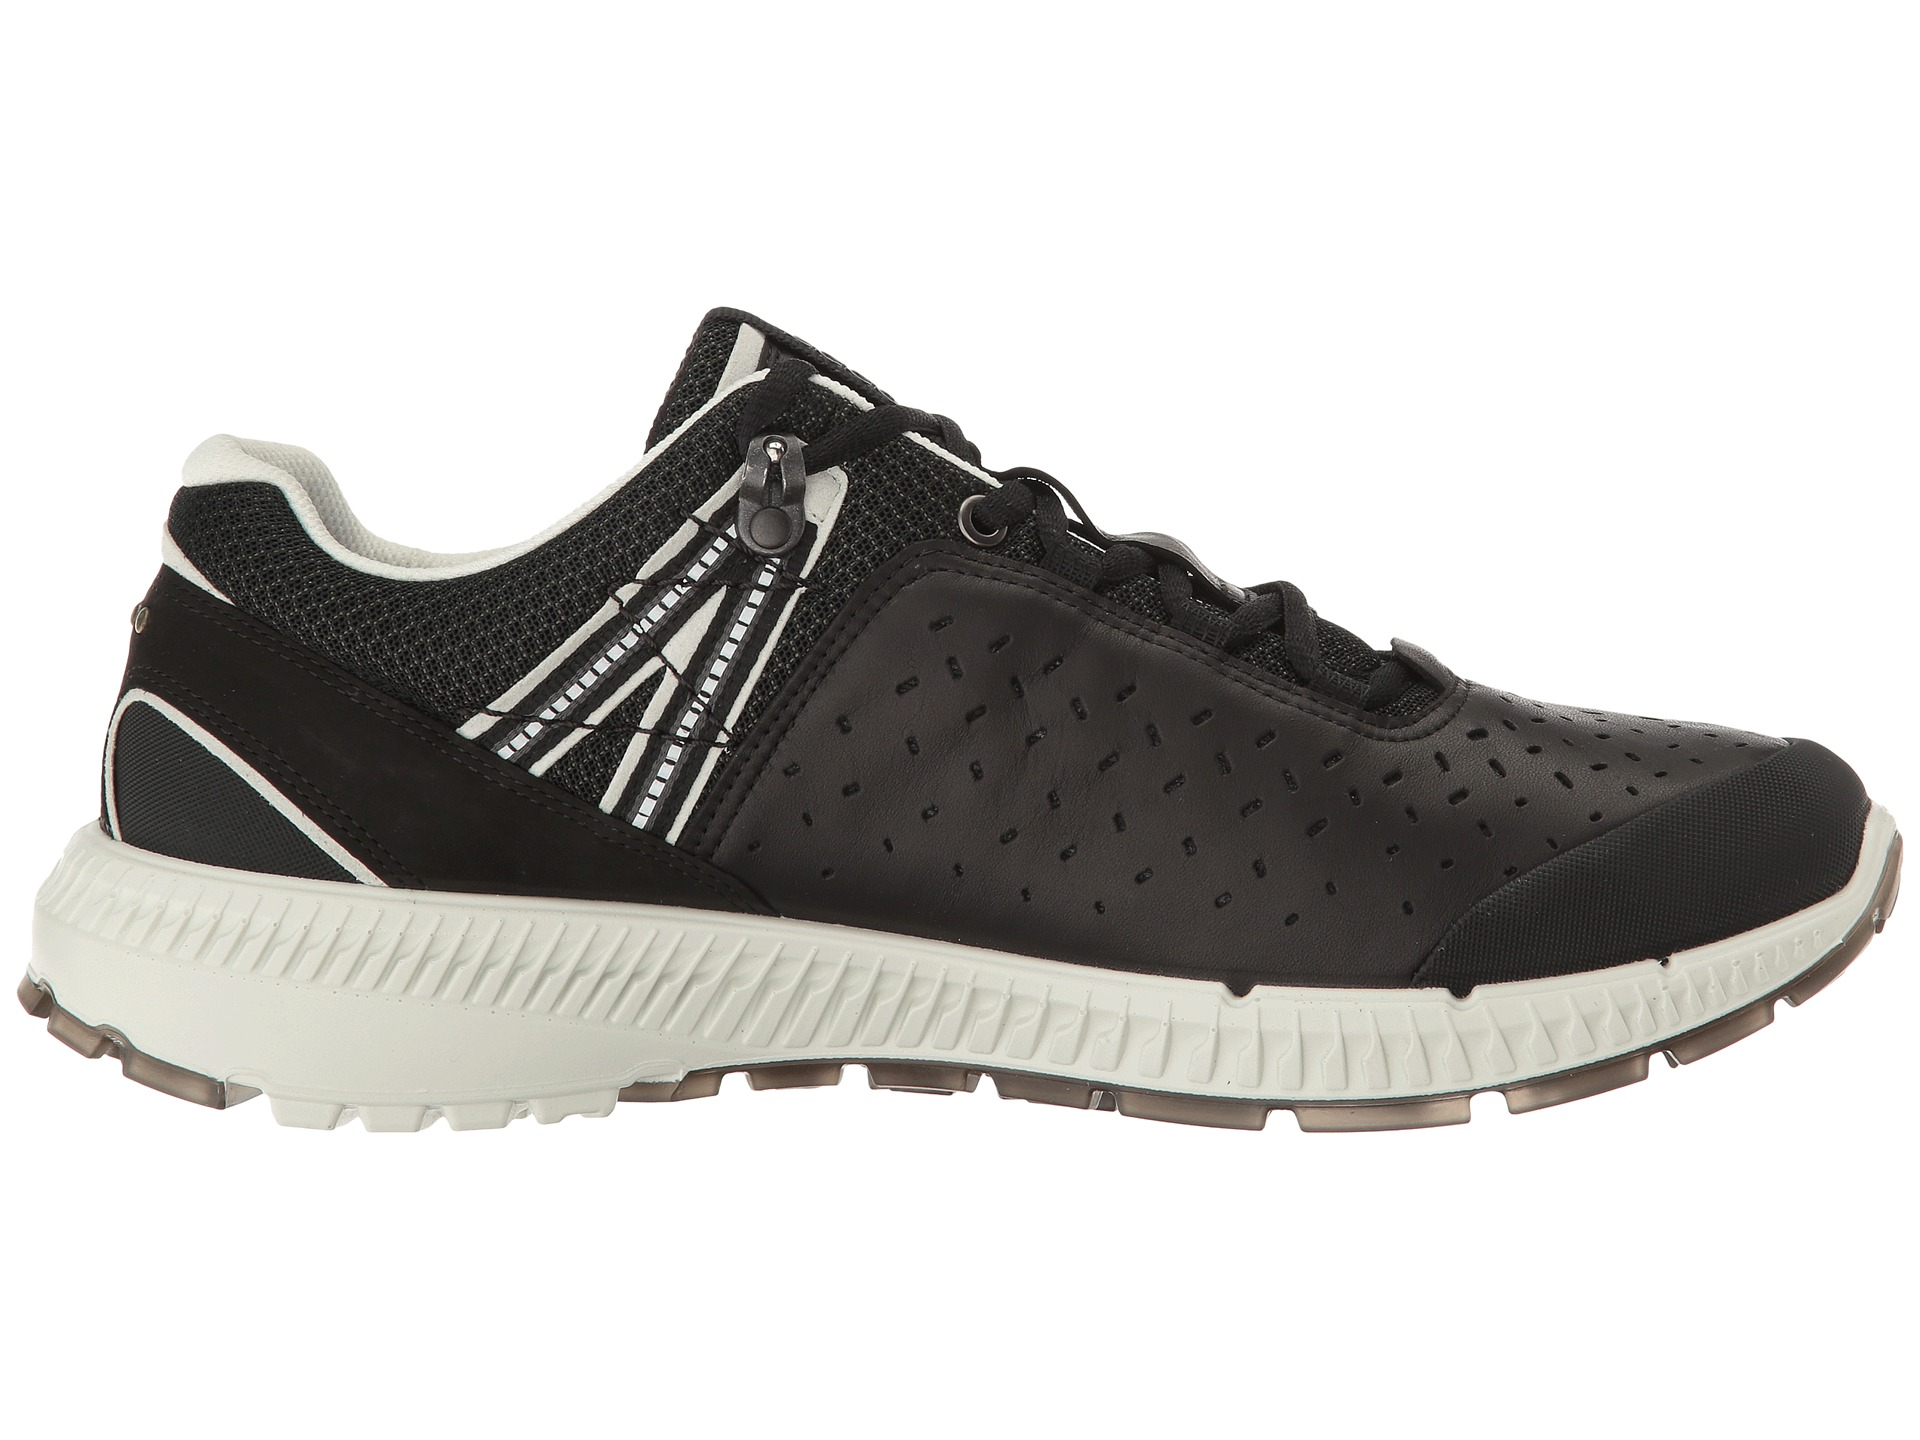 ECCO® Shoes, Boots, Sandals, Golf Shoes, Sneakers & Kids ...